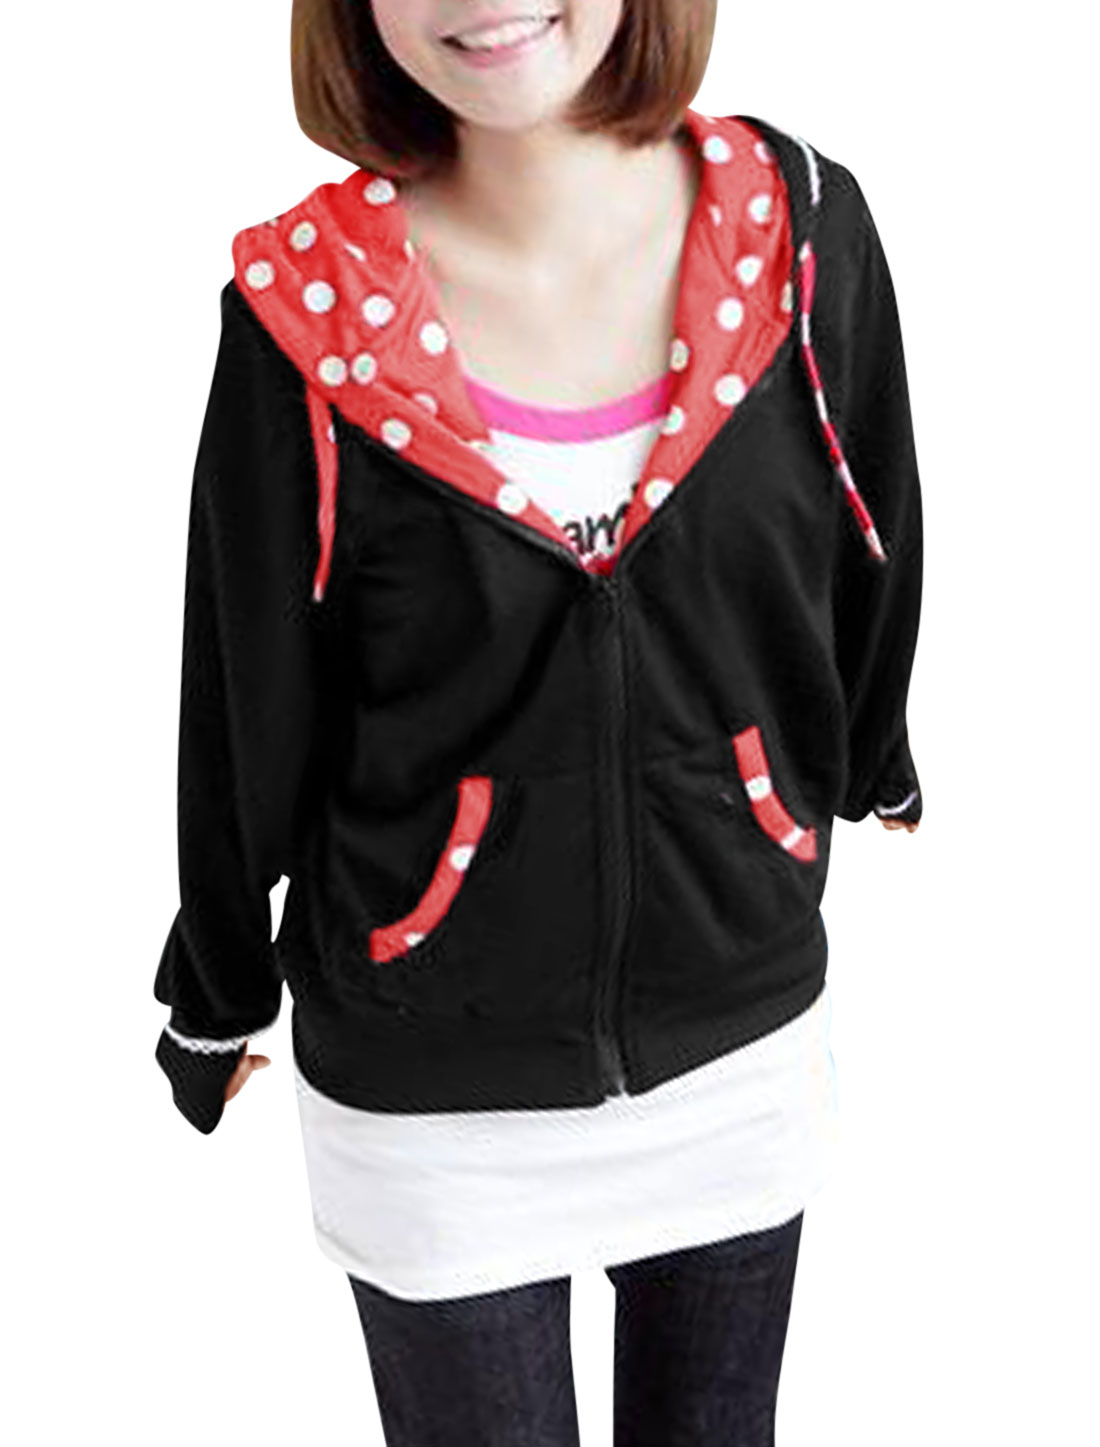 Women Hooded Two Front Pockets Color Blocking Leisure Jacket Black Red M